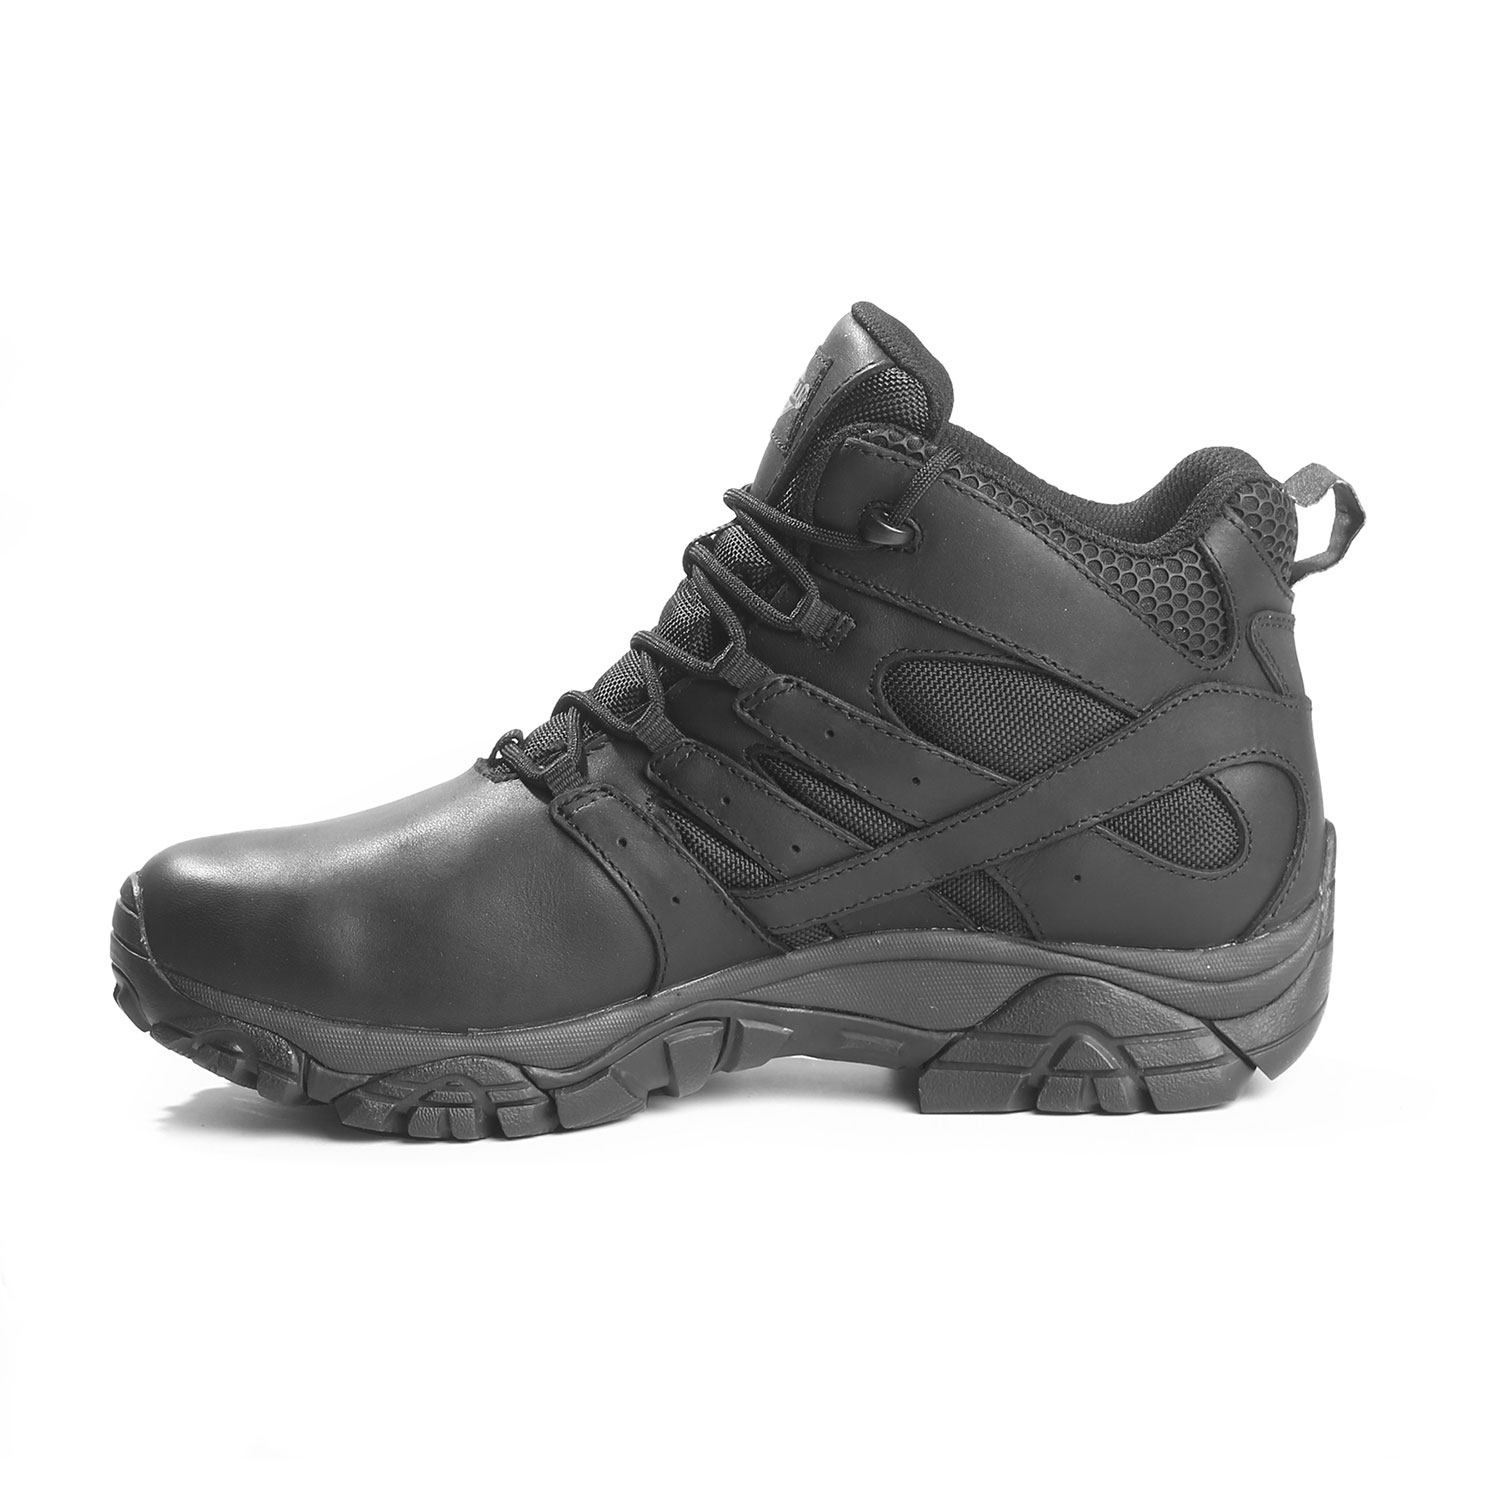 merrell womens moab 2 mid tactical response waterproof boot